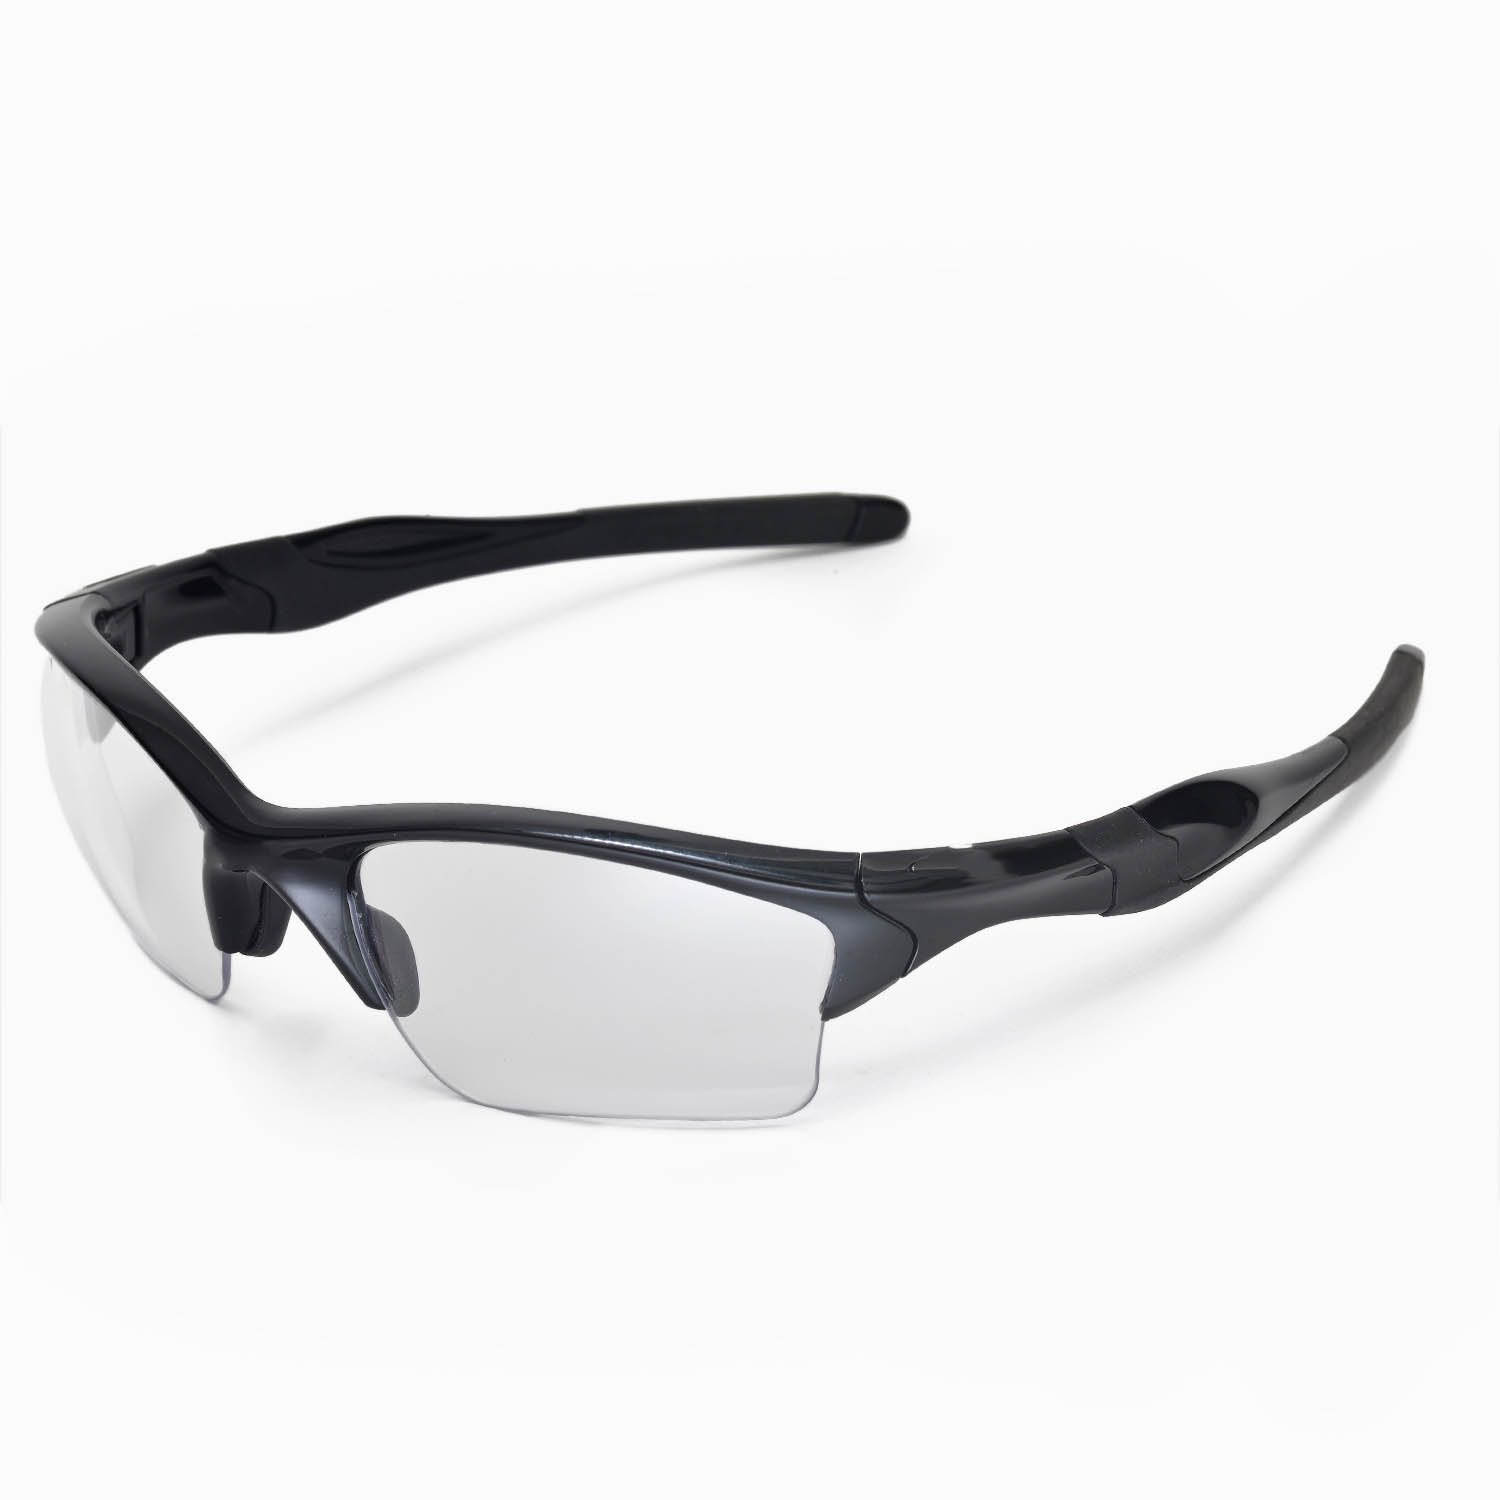 f79526c842b Details about WL Clear Replacement Lenses For Oakley Half Jacket 2.0 XL  Sunglasses